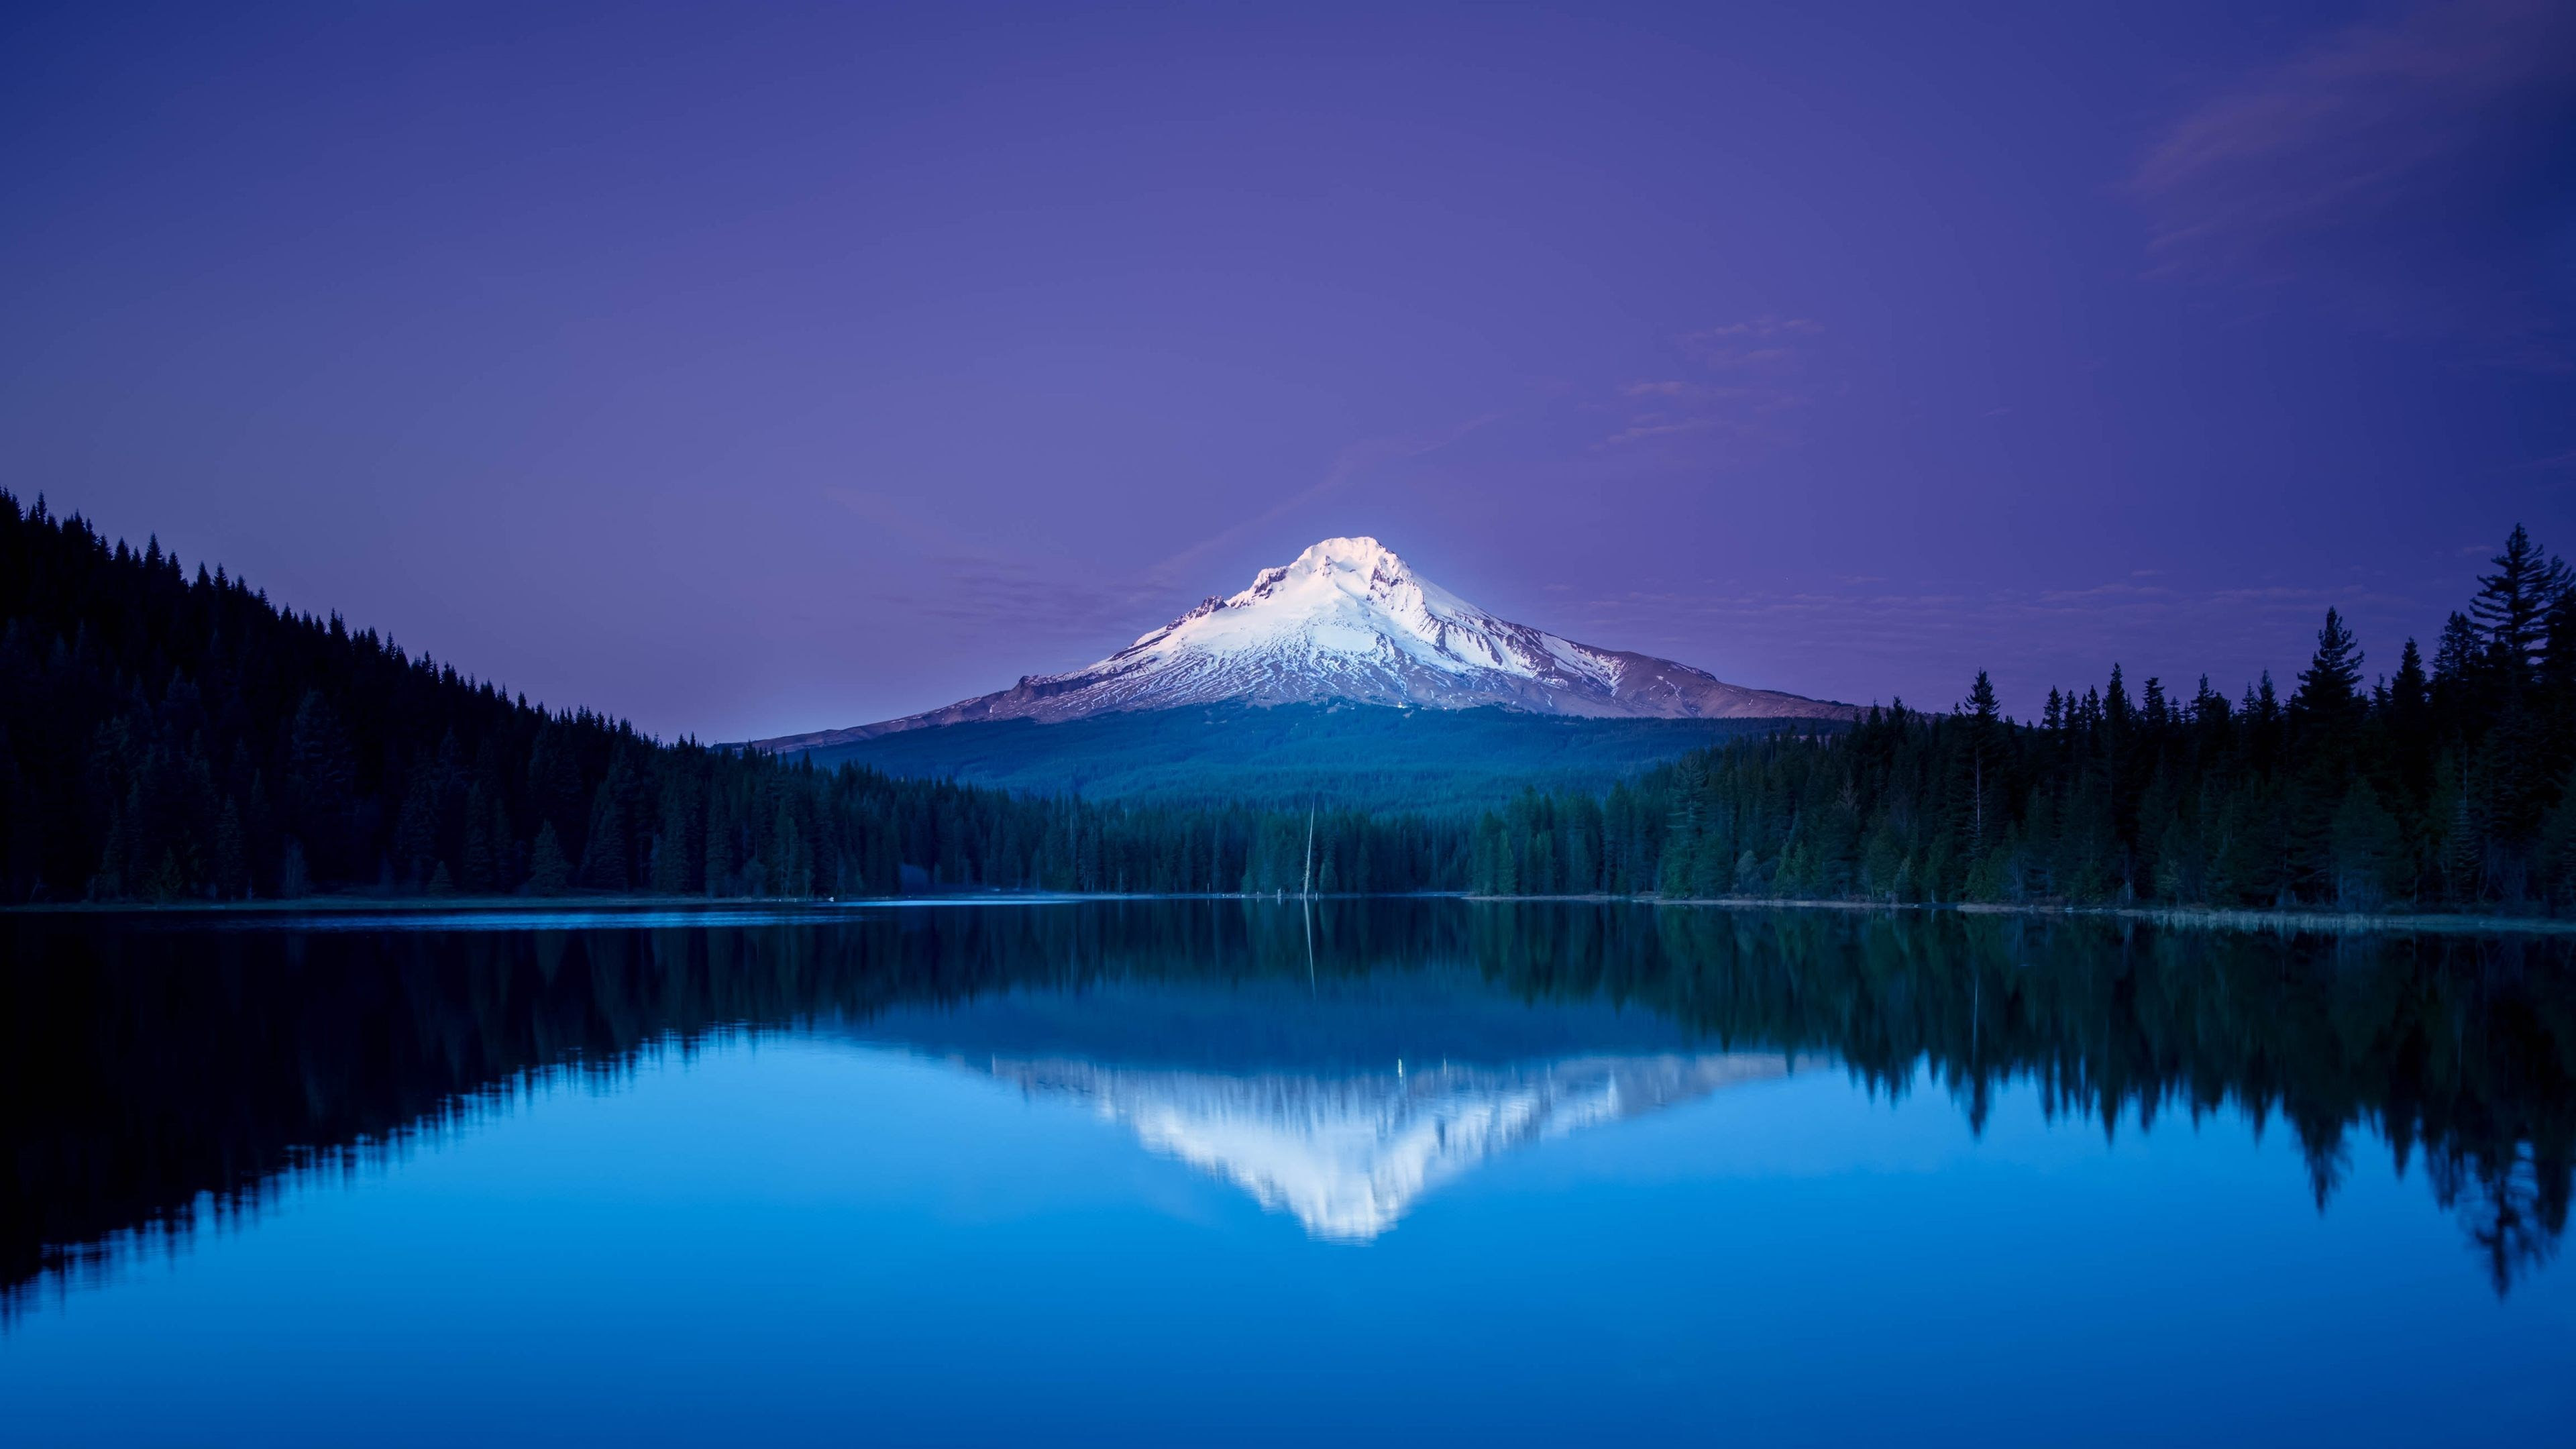 Landscape Lake Mountains 4k, HD Nature, 4k Wallpapers, Images, Backgrounds, Photos and Pictures